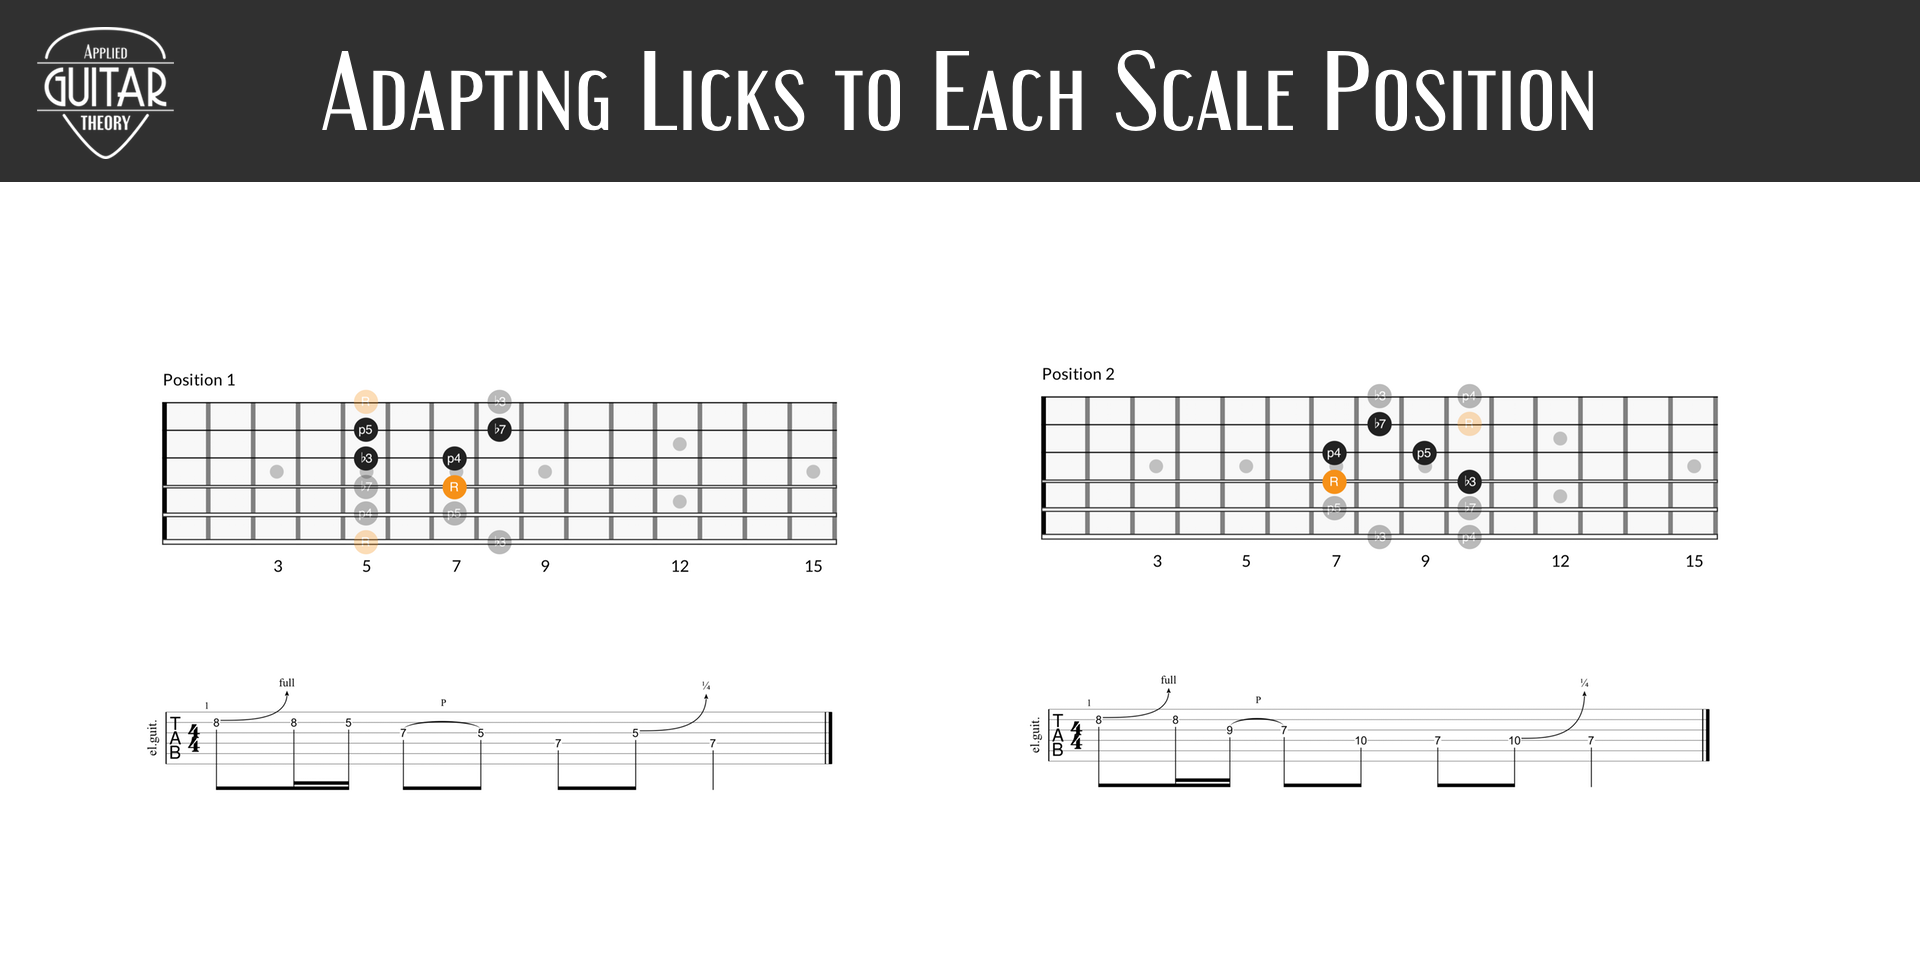 Adapting licks to each scale position